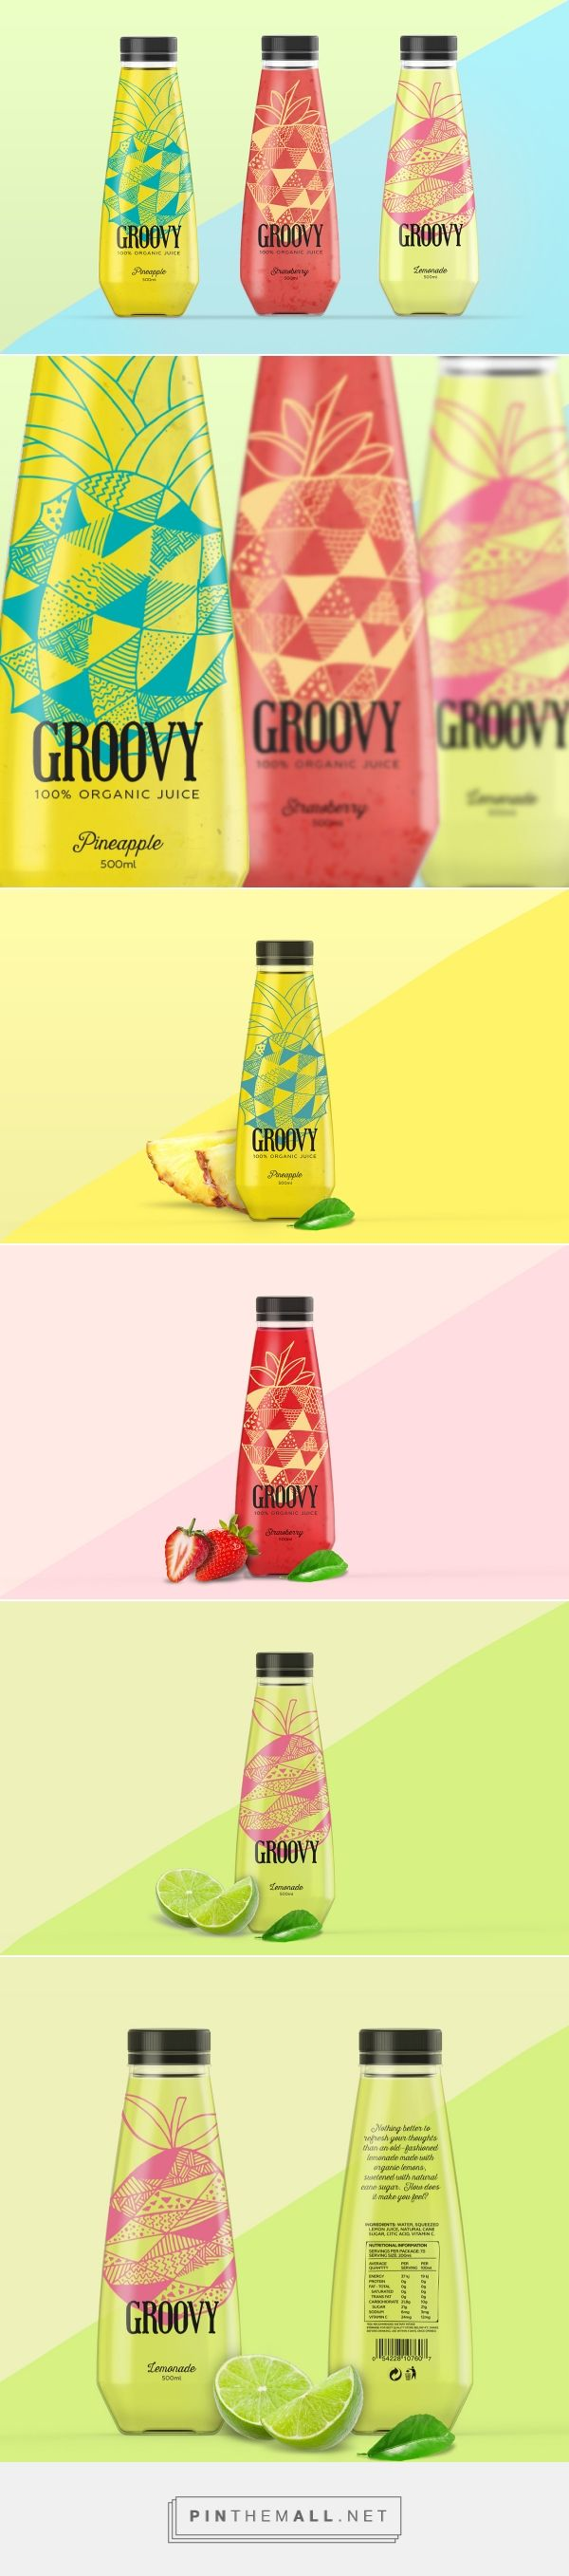 GROOVY - 100% ORGANIC JUICE on Behance student project curated by Packaging Diva PD. Packaging (structural) design and branding for GROOVY 100% organic juice. Fresh and funny for young consumers with a healthy lifestyle.